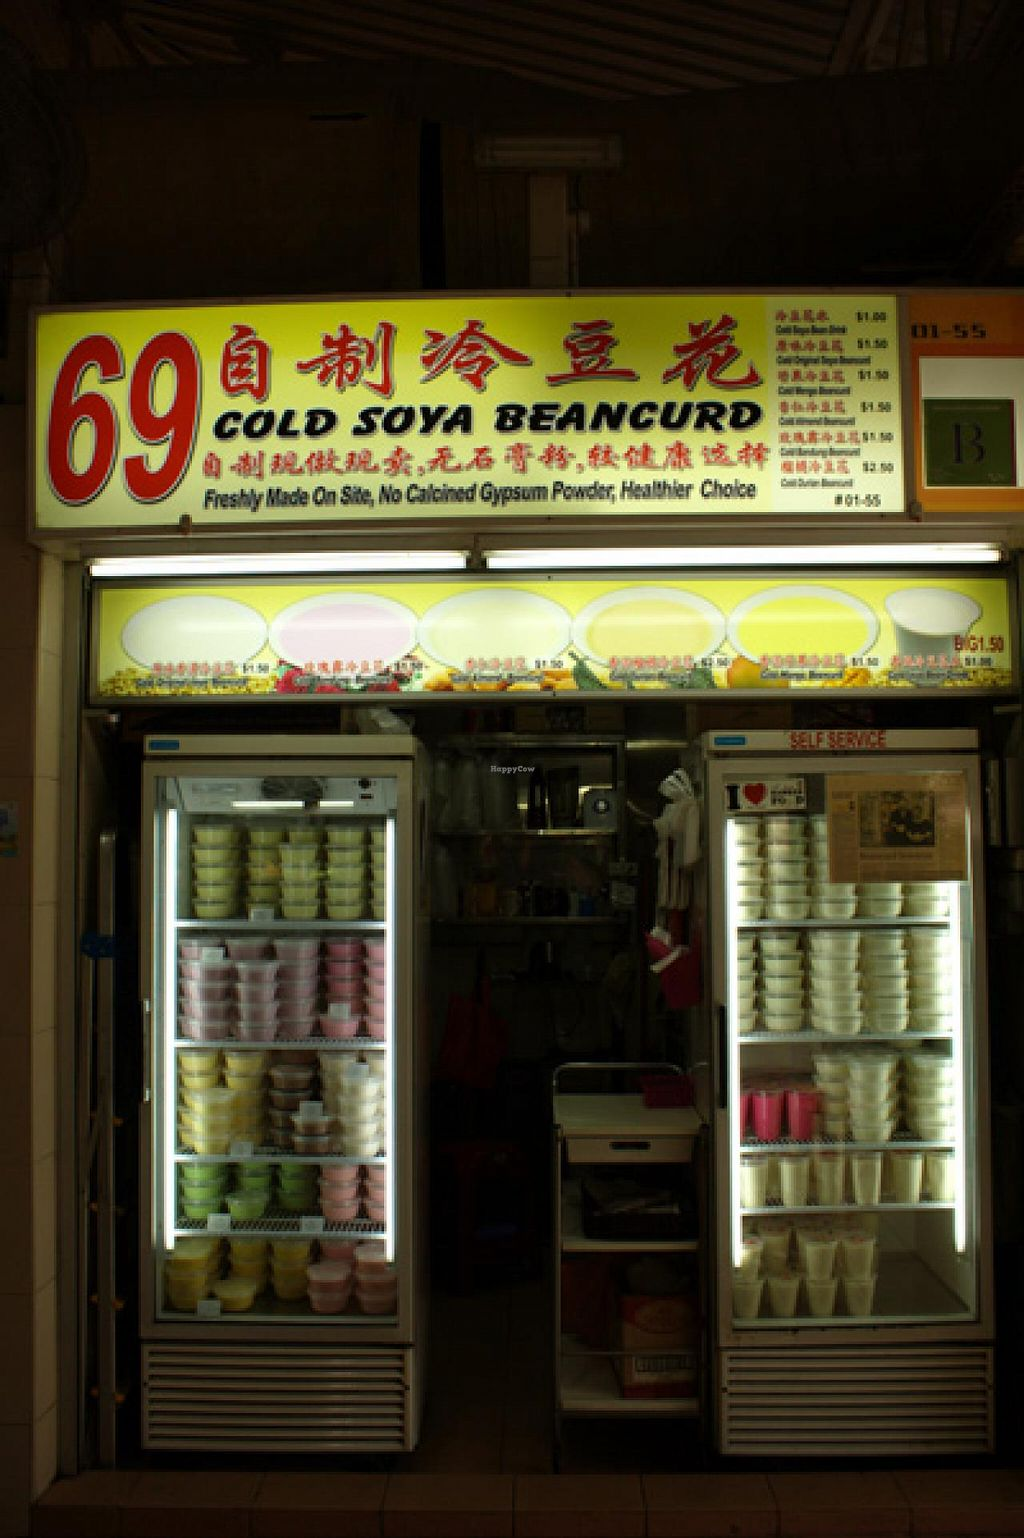 """Photo of 69 Cold Soya Beancurd  by <a href=""""/members/profile/cdrk"""">cdrk</a> <br/>Little bean curd place <br/> April 2, 2014  - <a href='/contact/abuse/image/46298/66876'>Report</a>"""